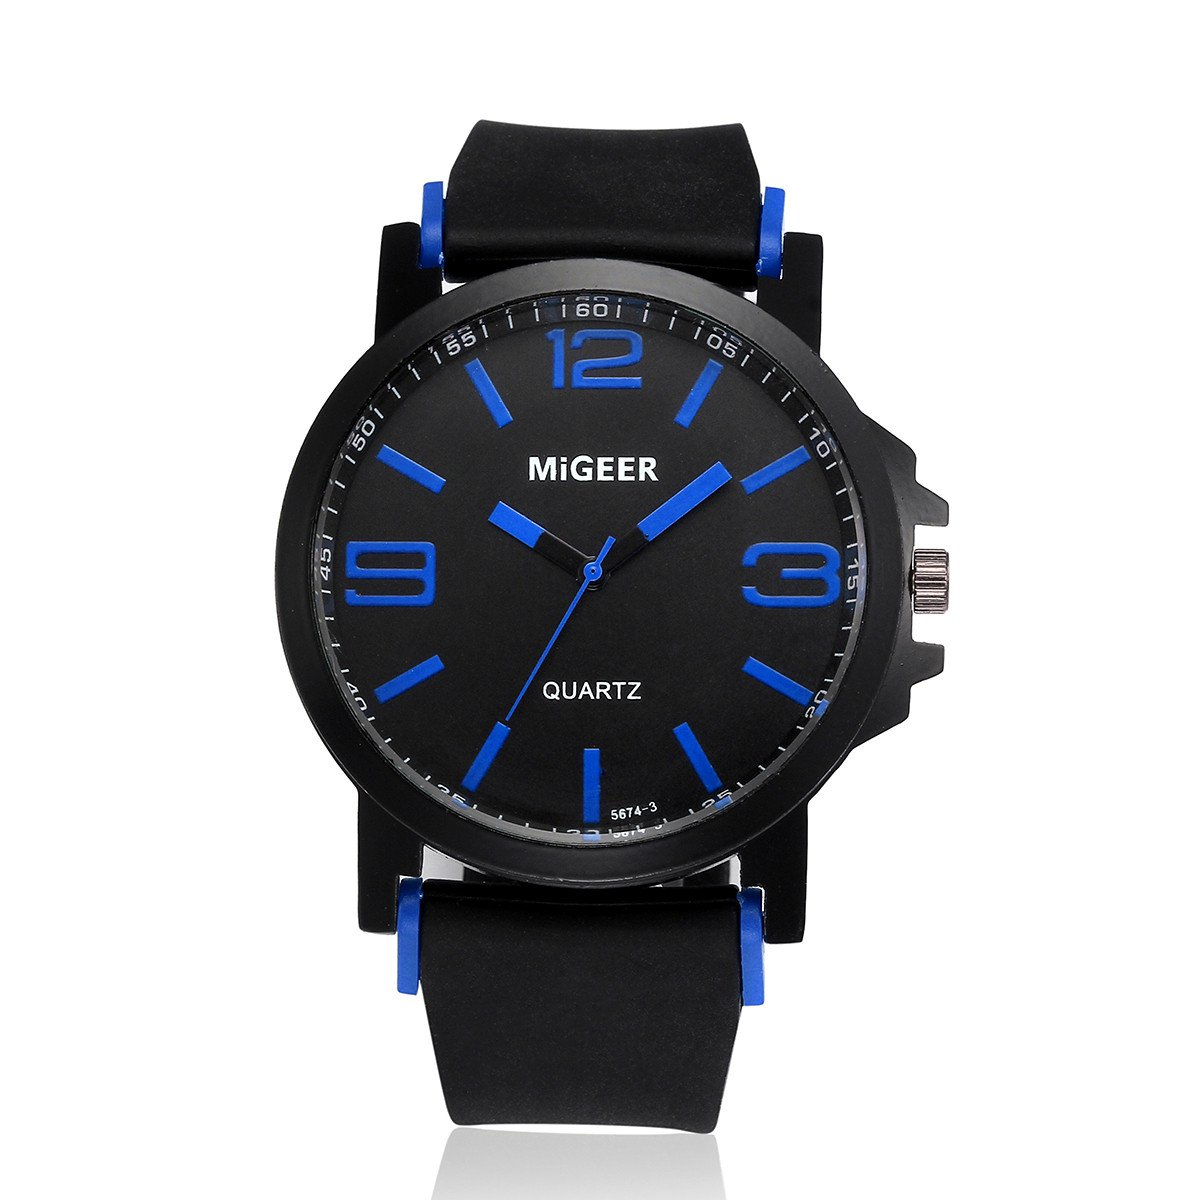 Hot Sale ! Gibobby Watches, Luxury Ultra Thin Wristwatches Chronograph Minimalist Silicone Strap Watches Simple Sport Analog Wrist Watches Gifts for Men